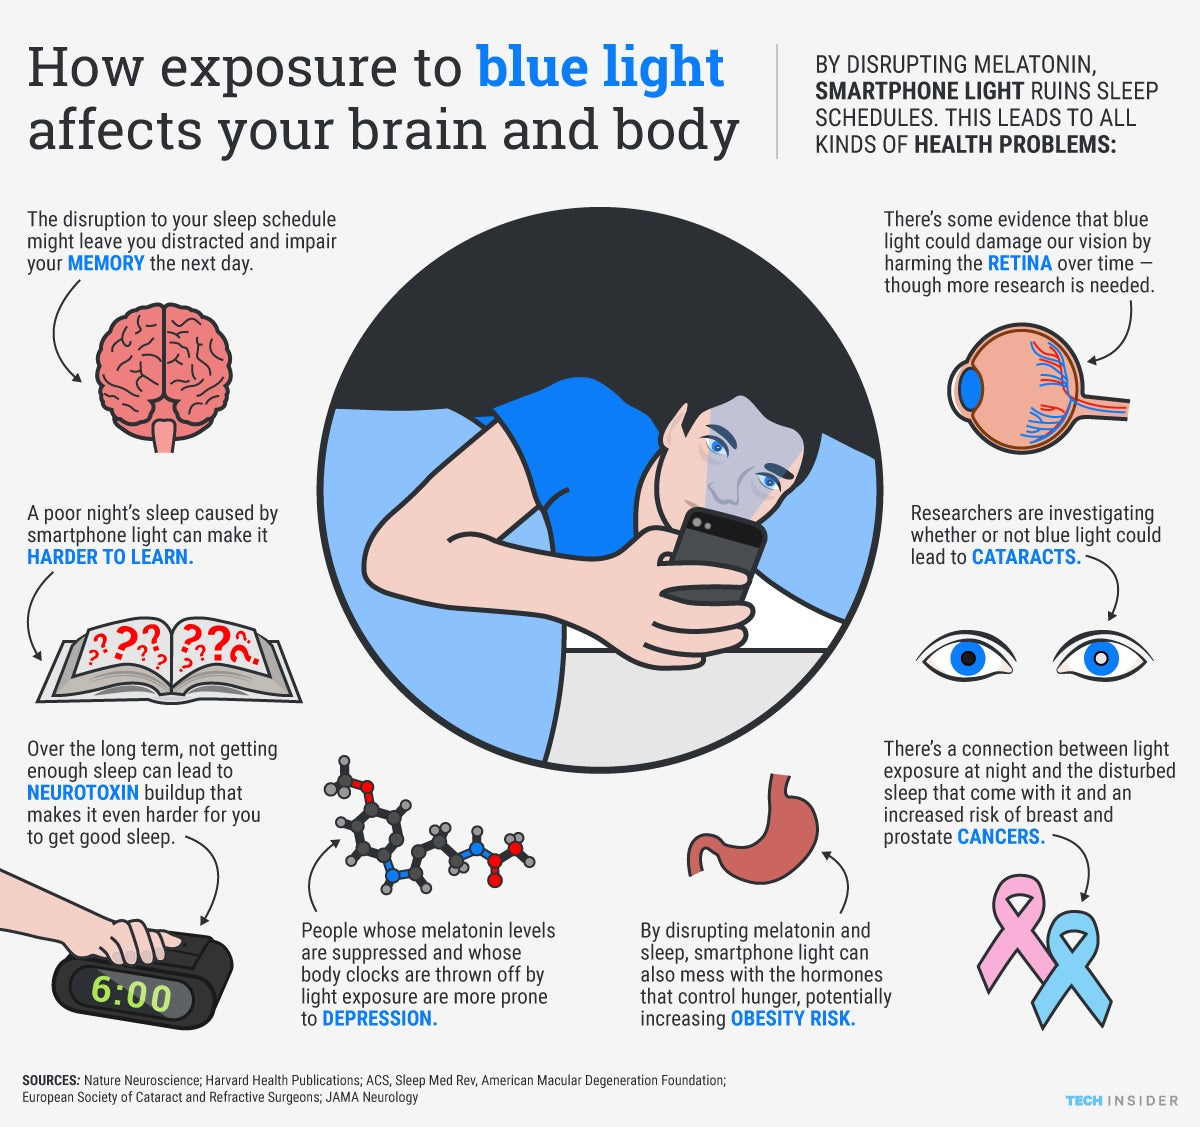 How exposure to blue light affects your brain and sleep